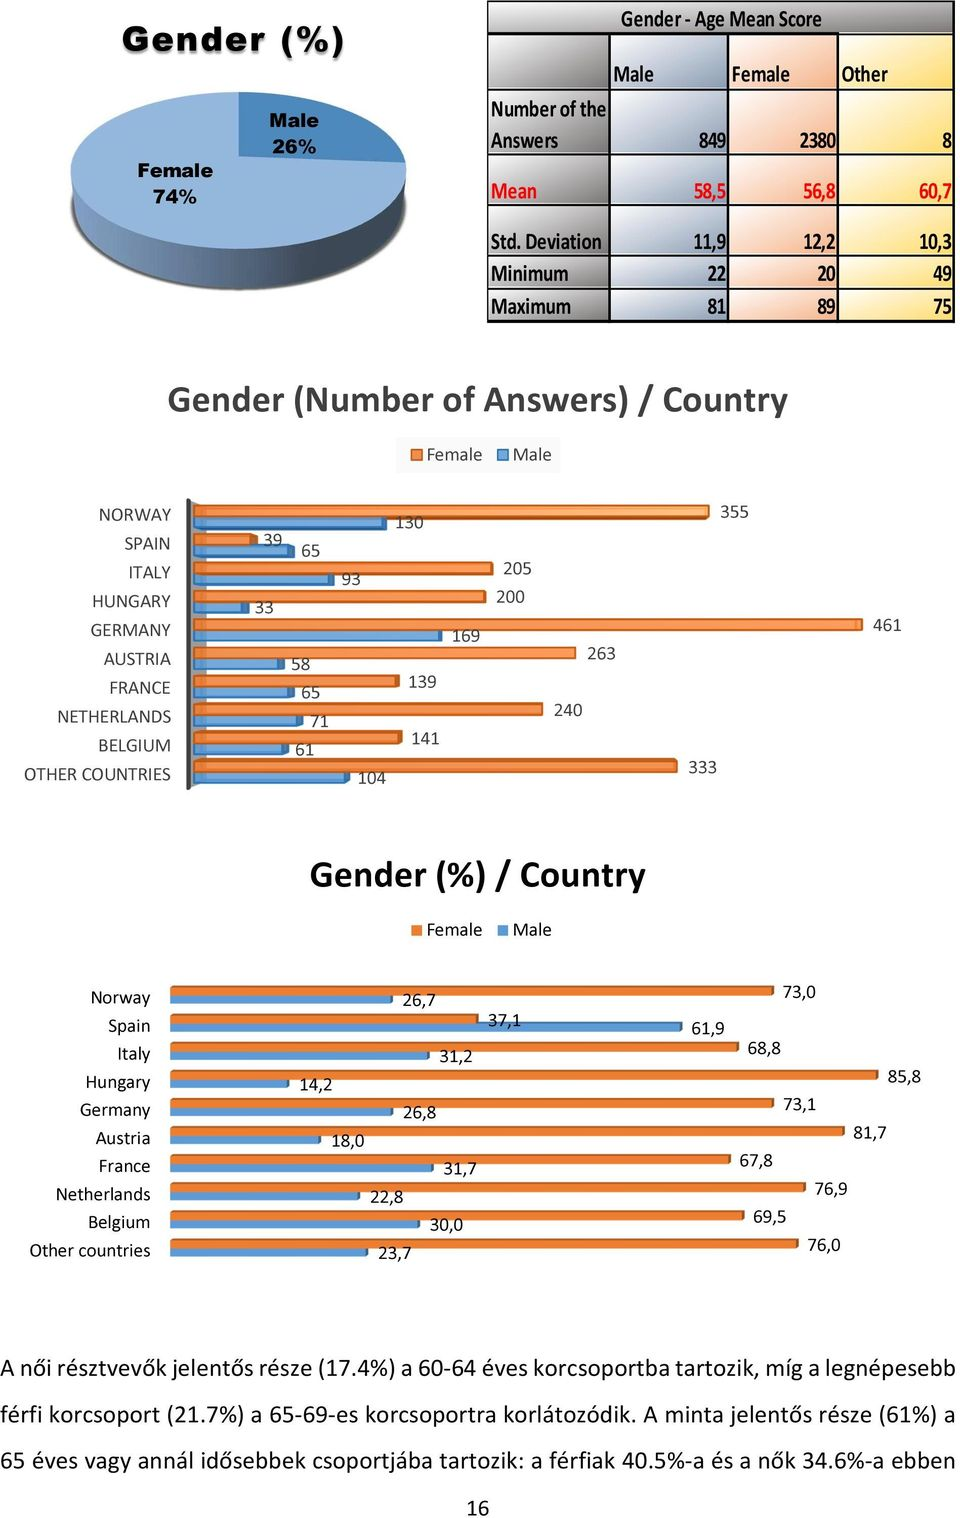 33 58 65 71 61 93 104 130 139 141 169 205 200 240 263 333 355 461 Gender (%) / Country Female Male Norway Spain Italy Hungary Germany Austria France Netherlands Belgium Other countries 26,7 31,2 14,2